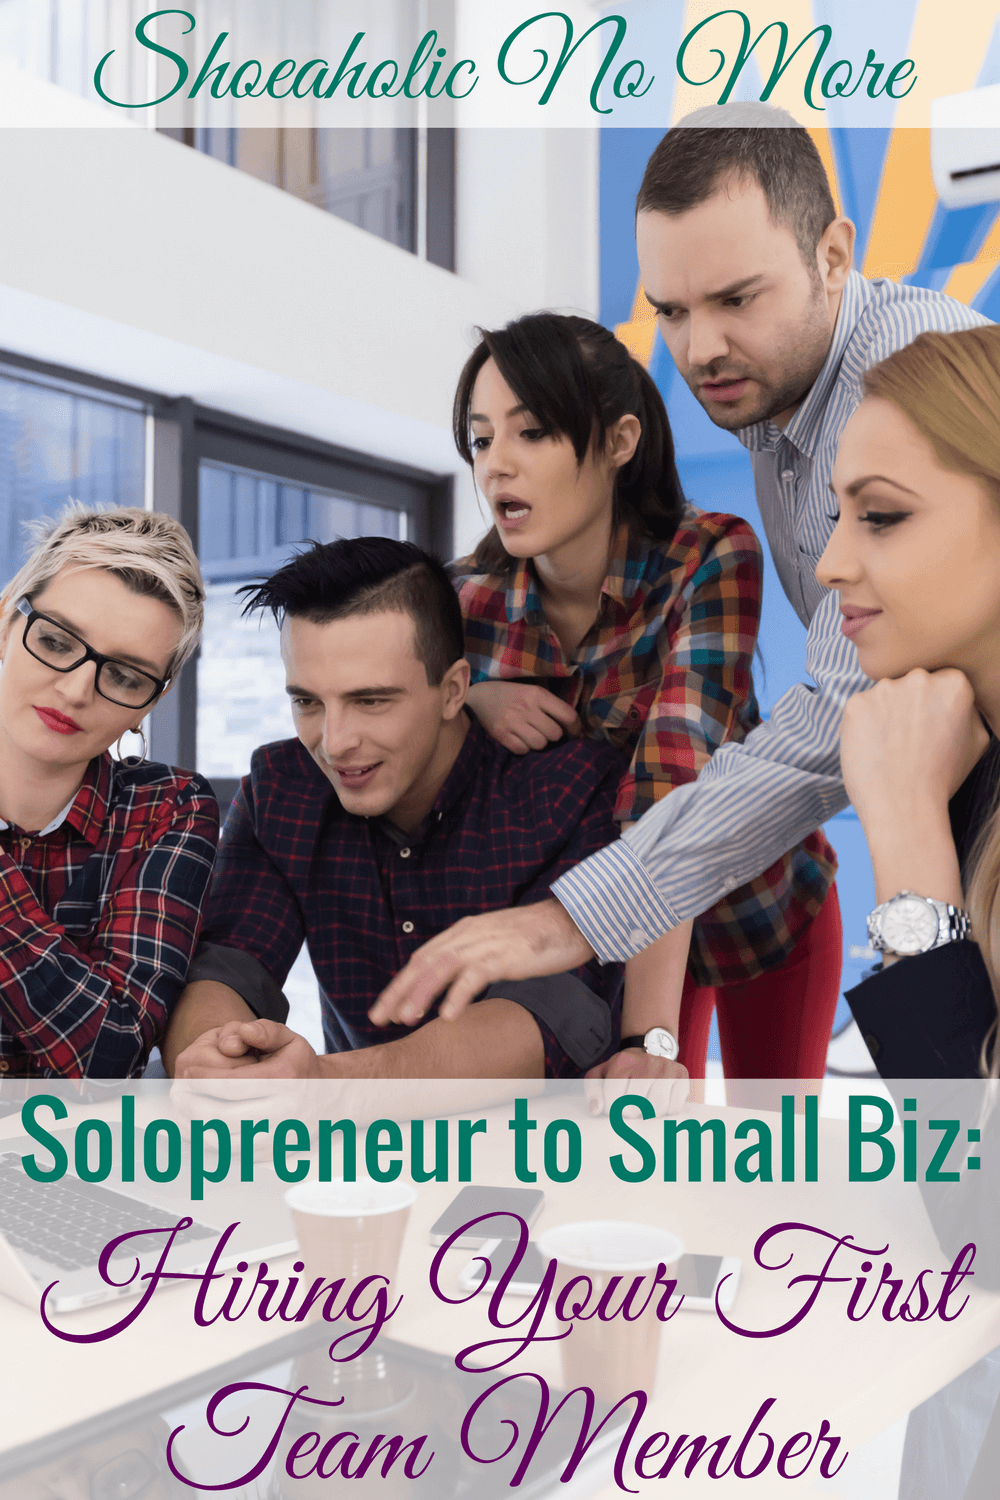 Are you ready to go from solopreneur to small business? Here are some helpful tips for hiring your first team member.